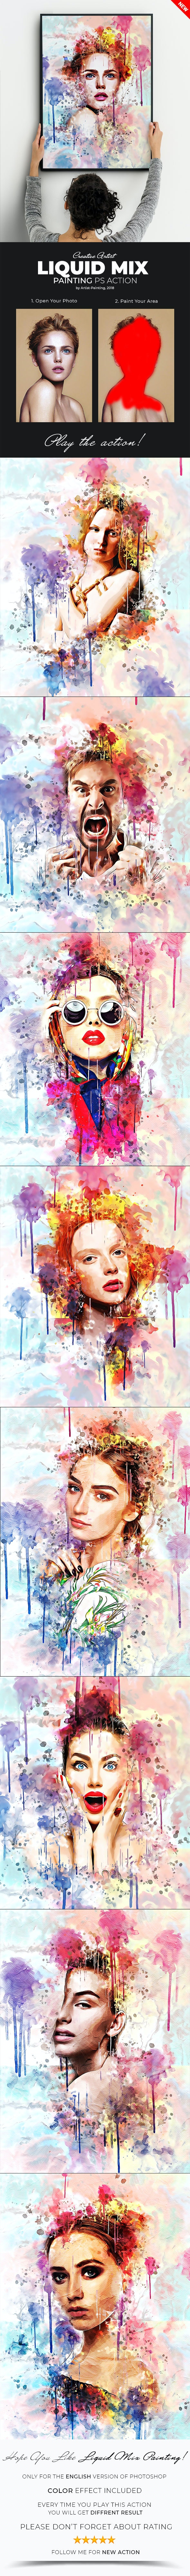 Liquid Mix Painting Photoshop Action - Photo Effects Actions